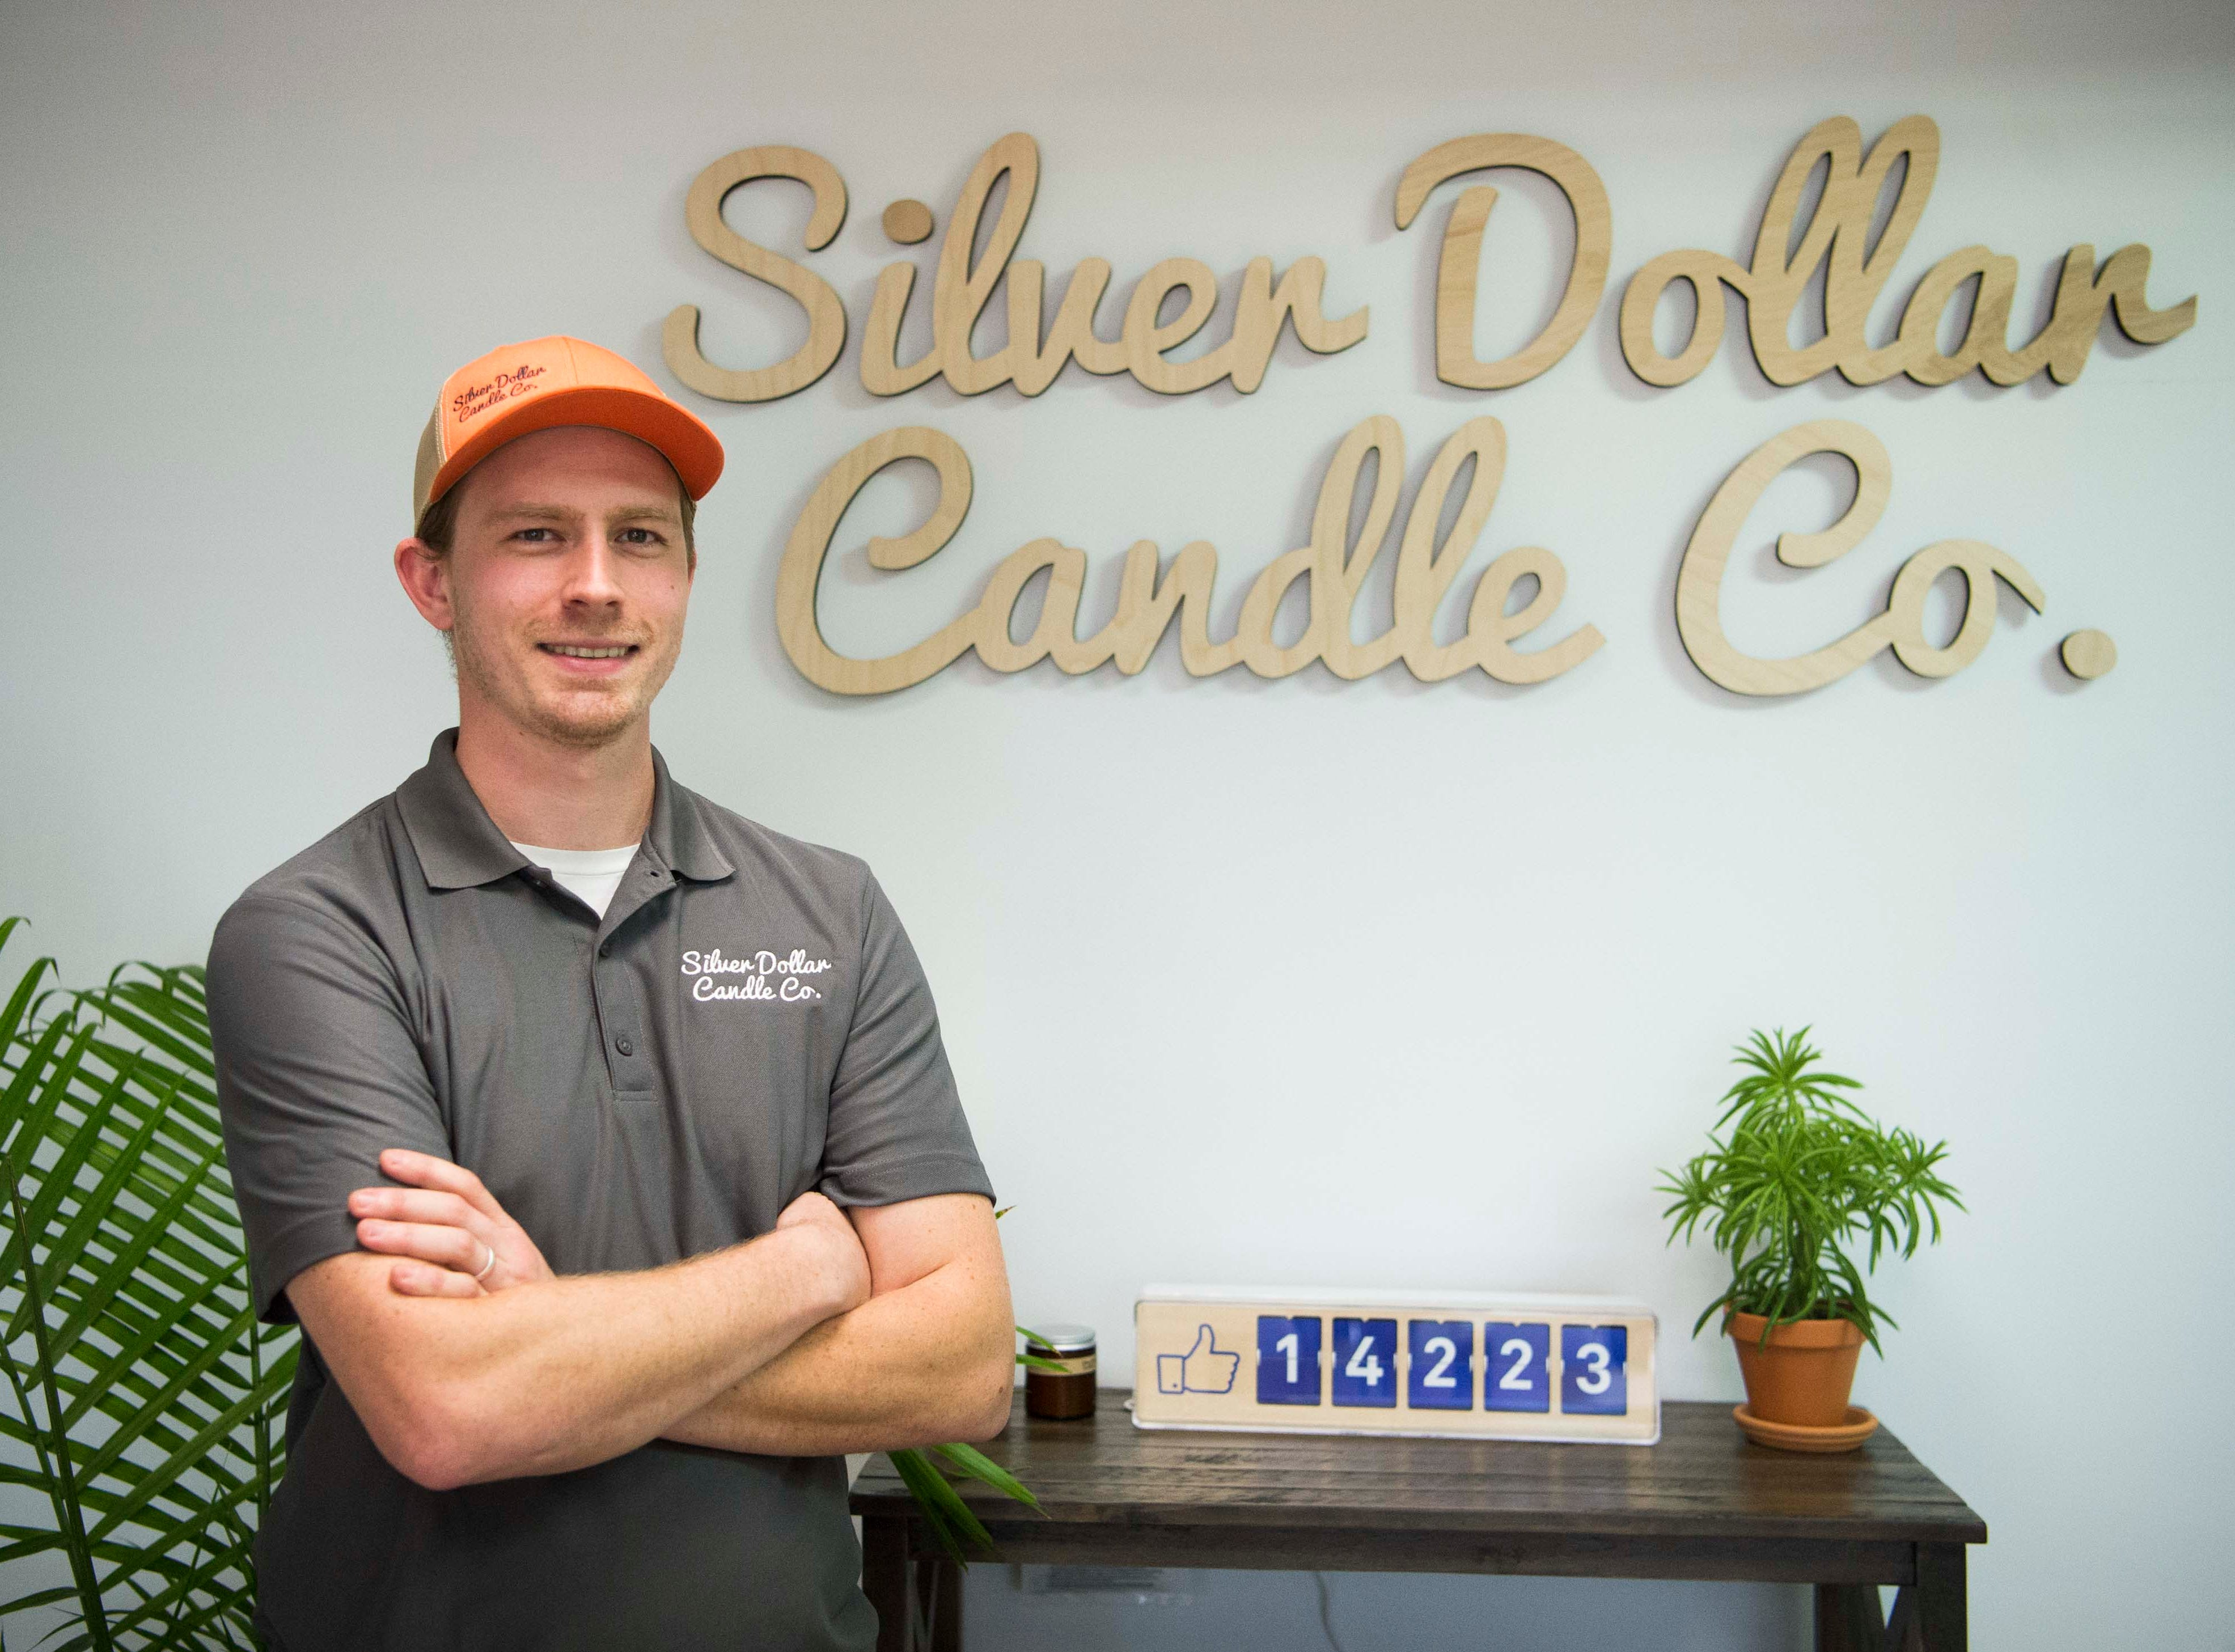 Co-owner Charlie Todd stands in Silver Dollar Candle Co. in Knoxville Tuesday, March 26, 2019. Silver Dollar Candle offers unique soy candles in a variety of scents, and is expanding to offer a make-your-own candle experience in their store.